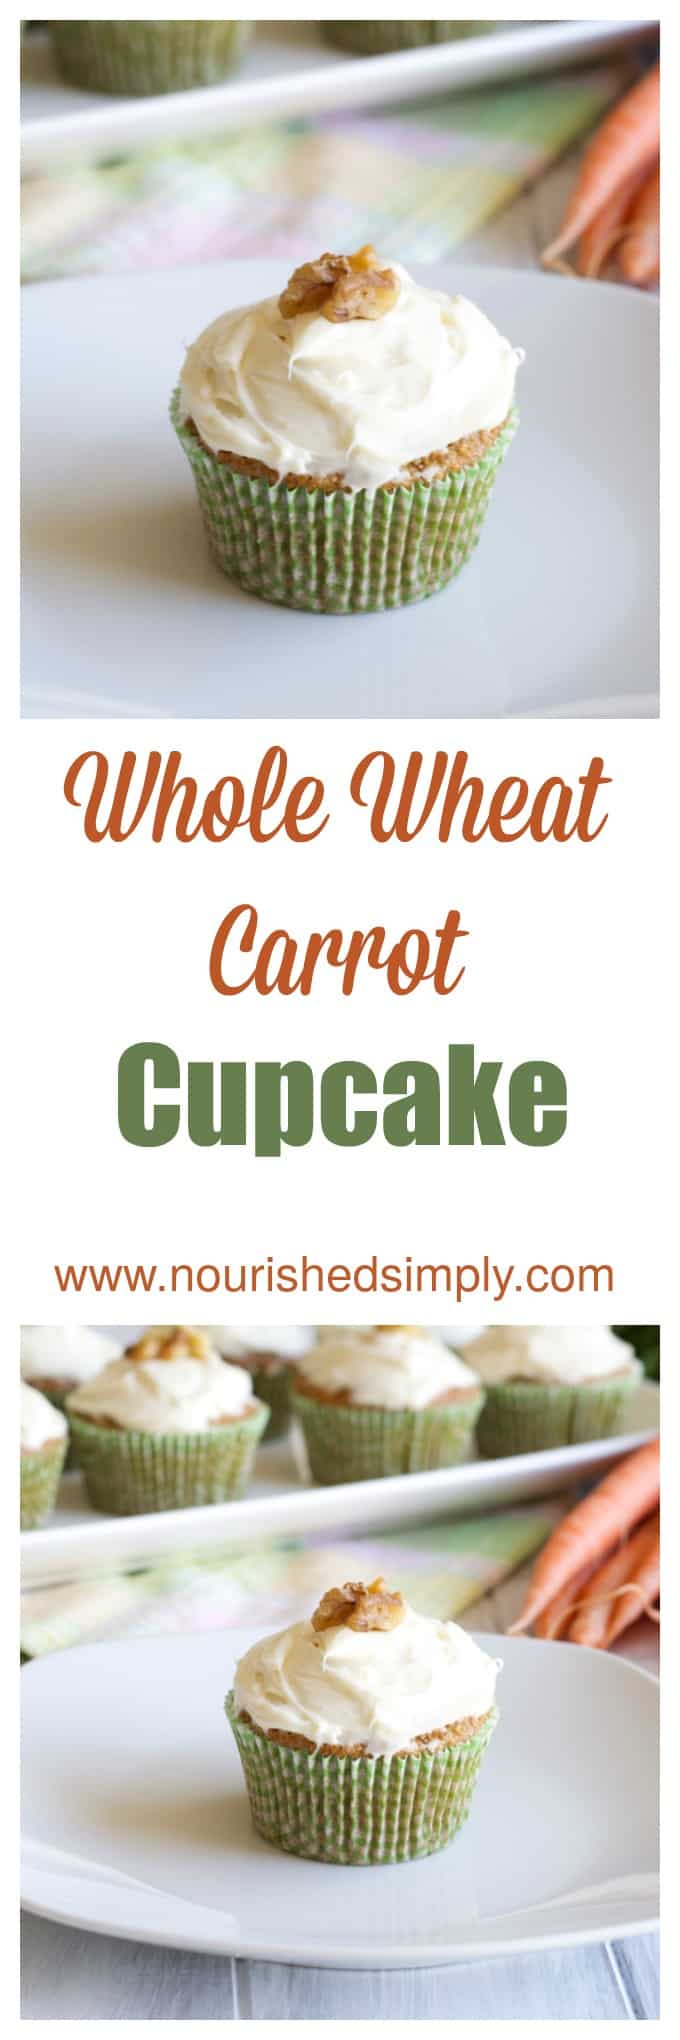 Whole Wheat Carrot Cupcakes made with whole wheat flour and other real ingredients.